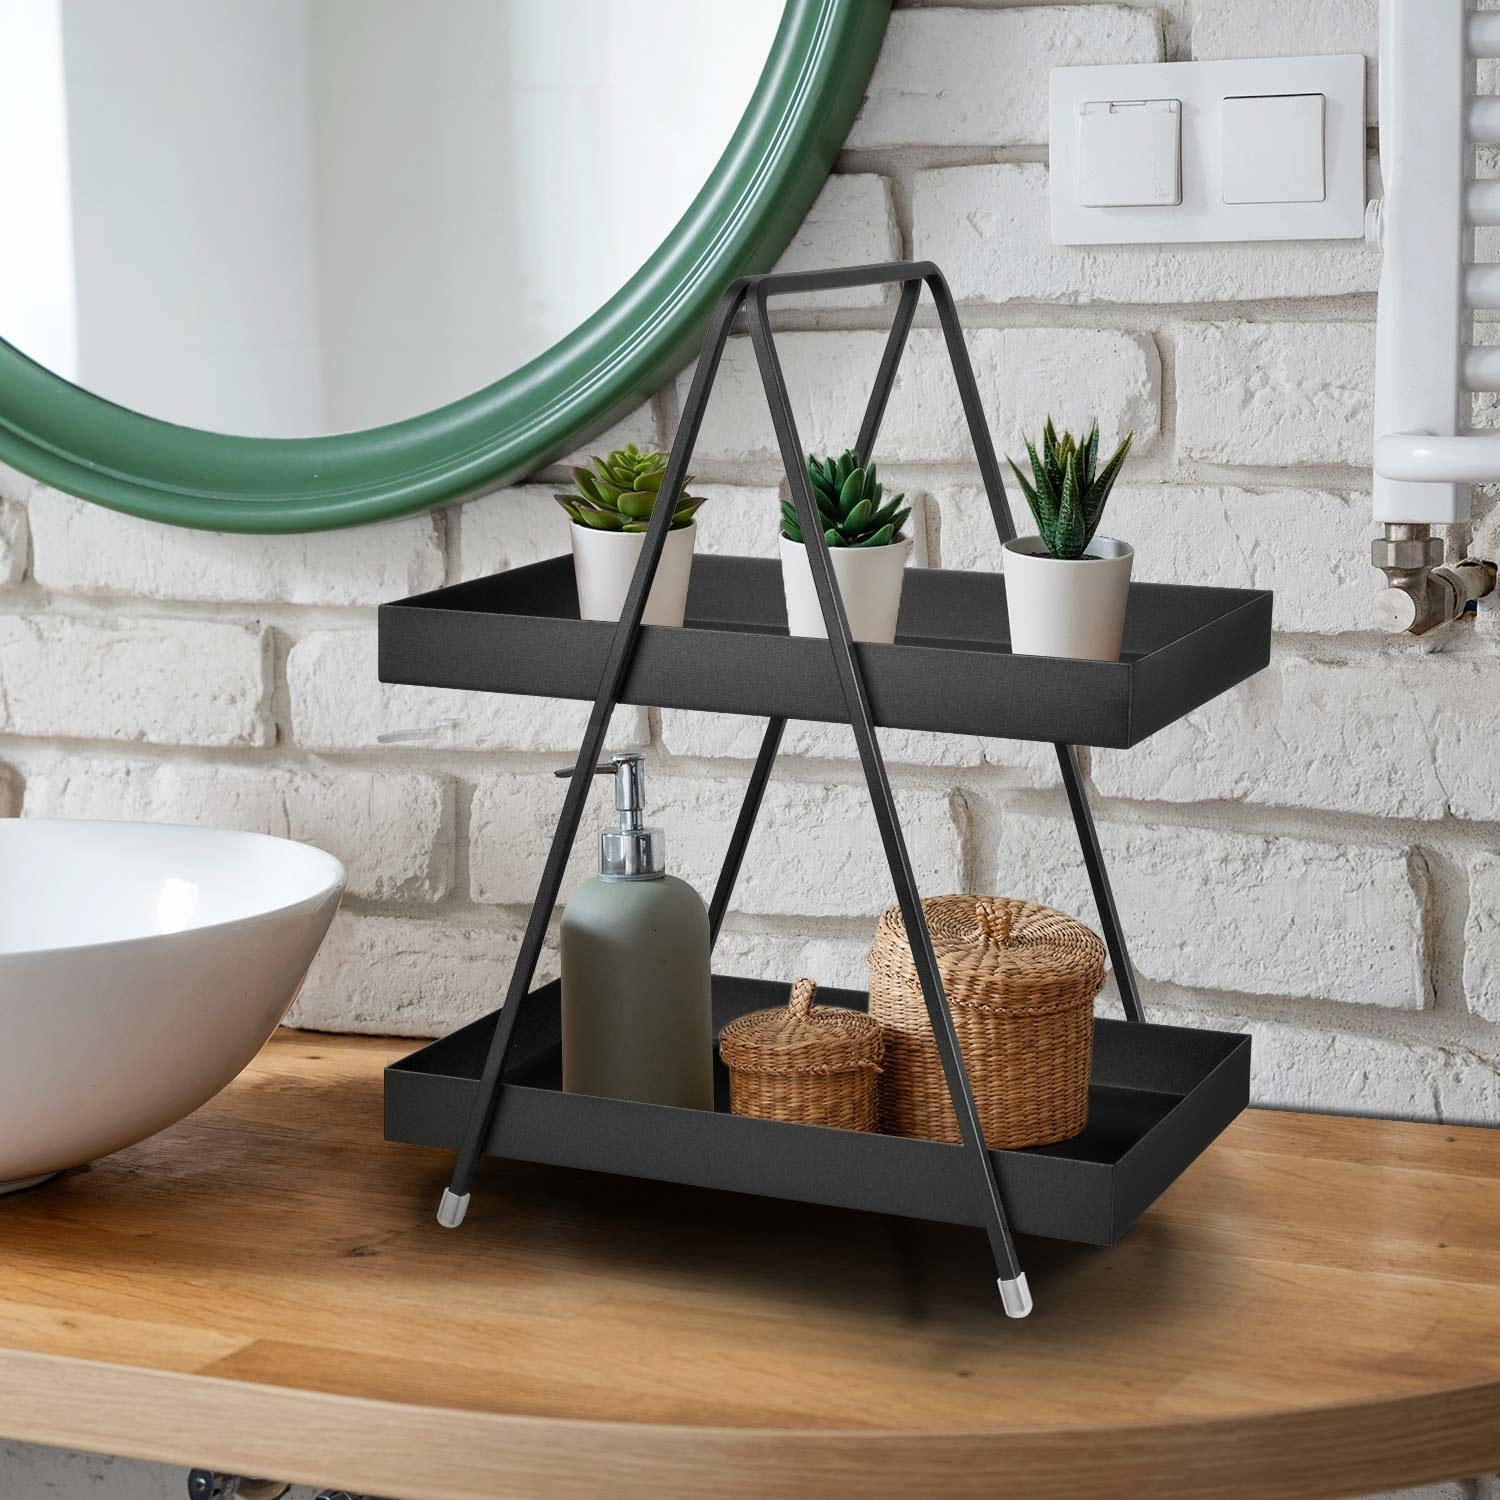 A black 2-tier standing rack made from metal and holding potted plants and baskets